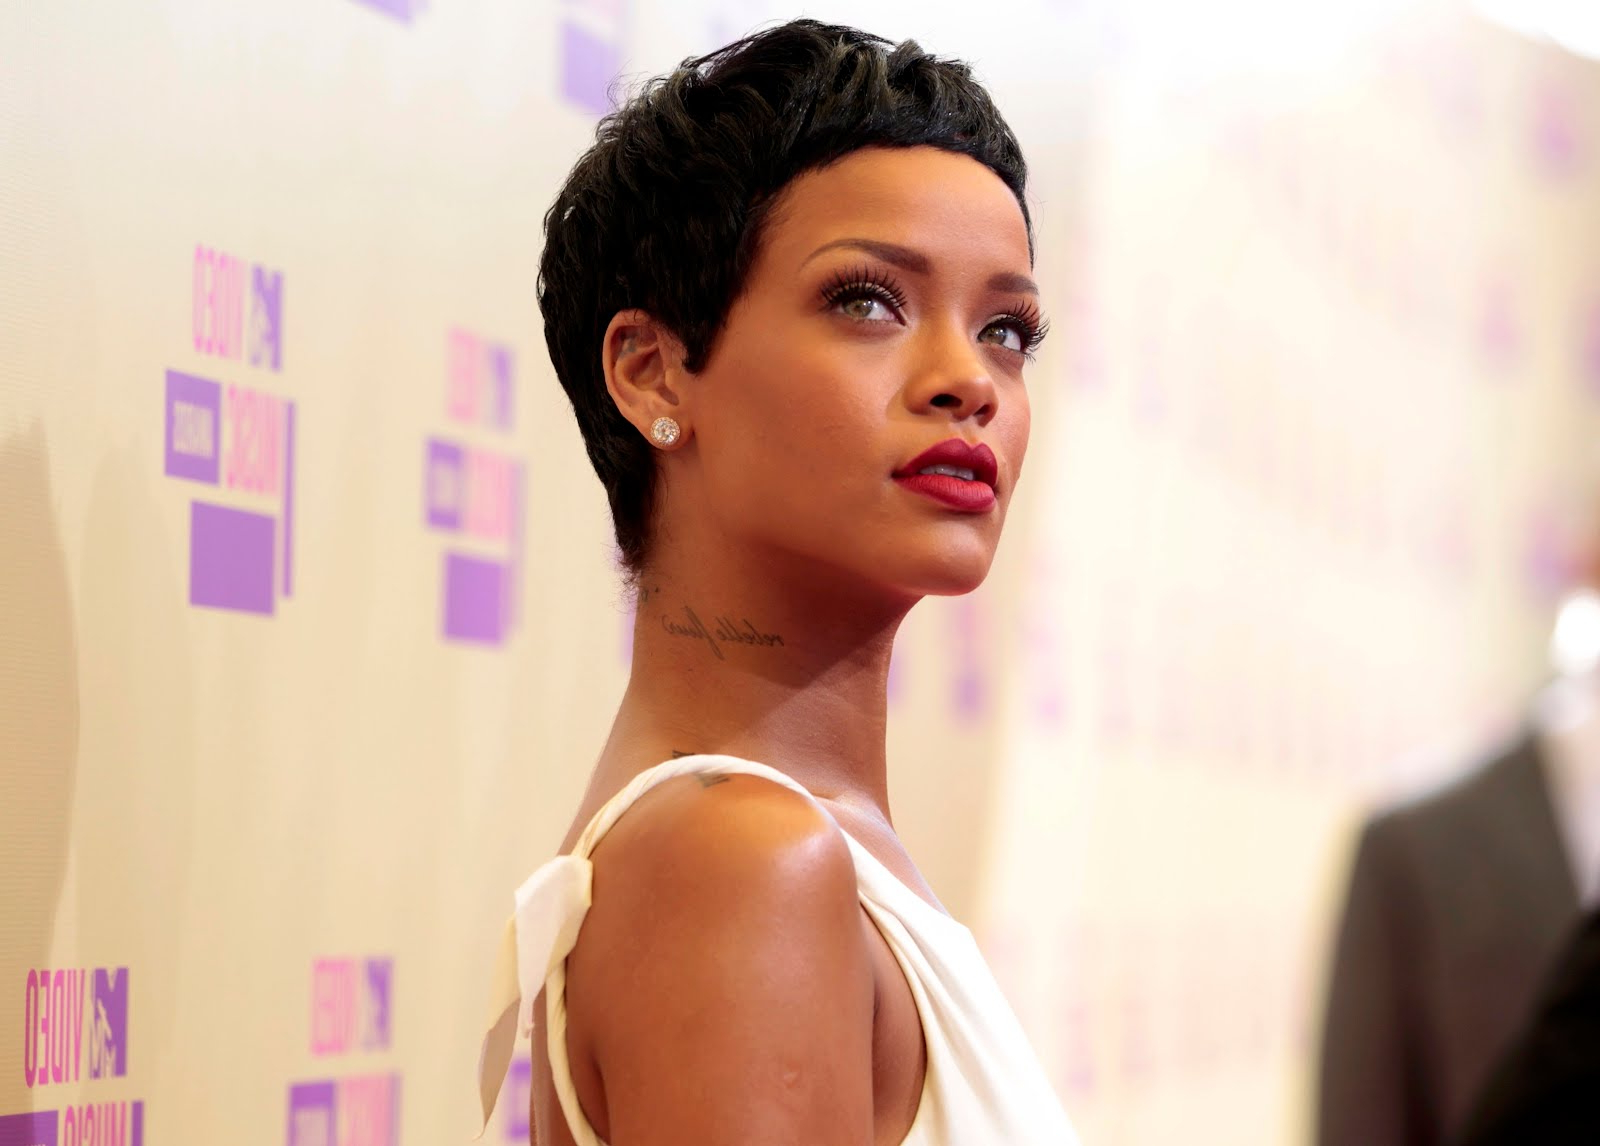 30 Classy To Cute Short Hairstyles For Black Women Throughout Soft Short Hairstyles For Black Women (View 8 of 25)